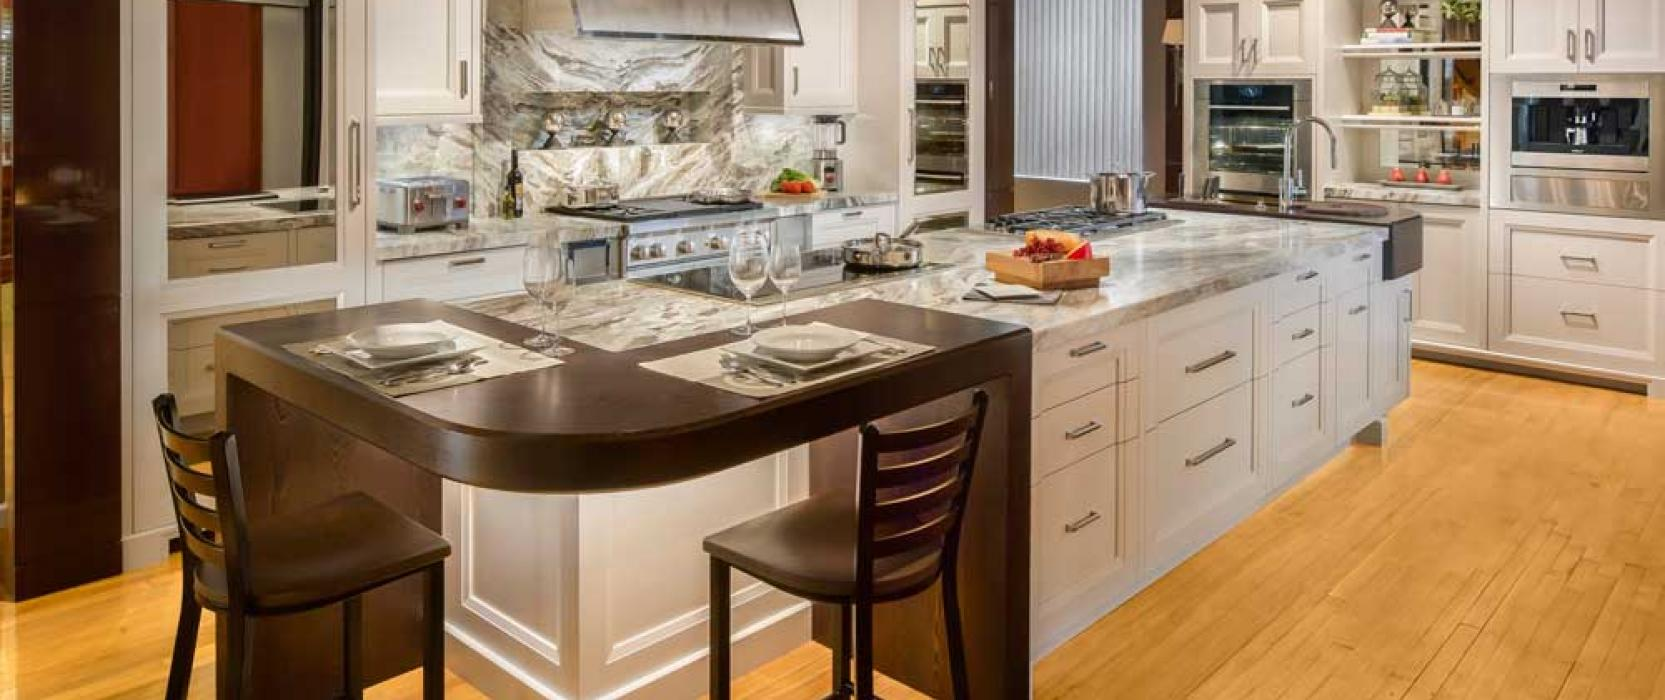 Clarke Unveils Stunning Kitchen in Connecticut